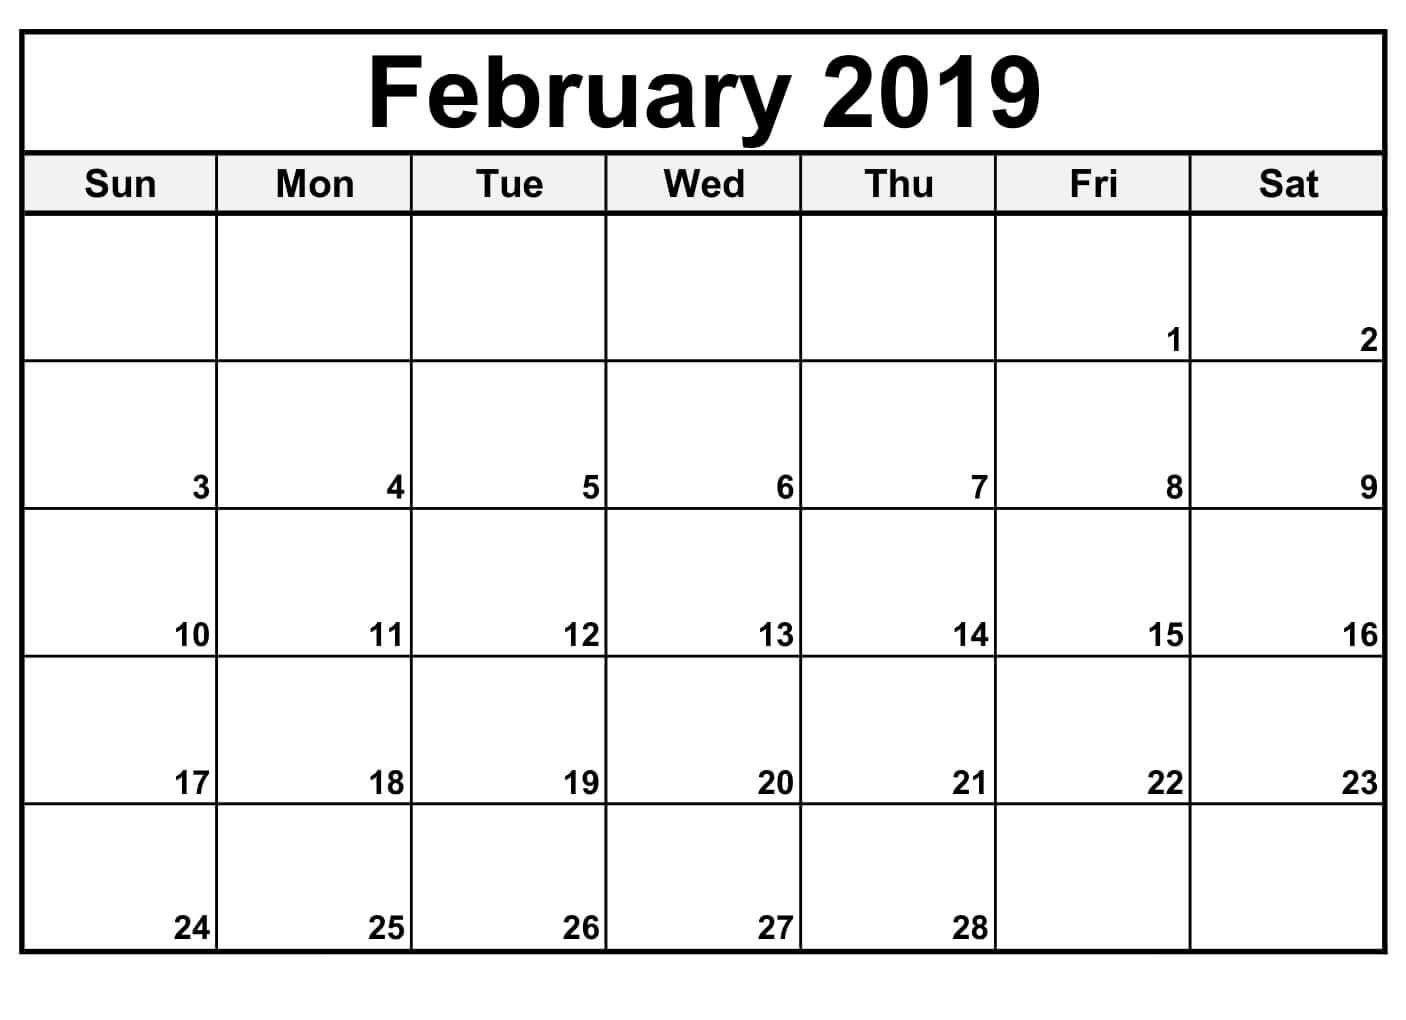 Calendar For February 2019 - Free Printable Calendar, Templates And